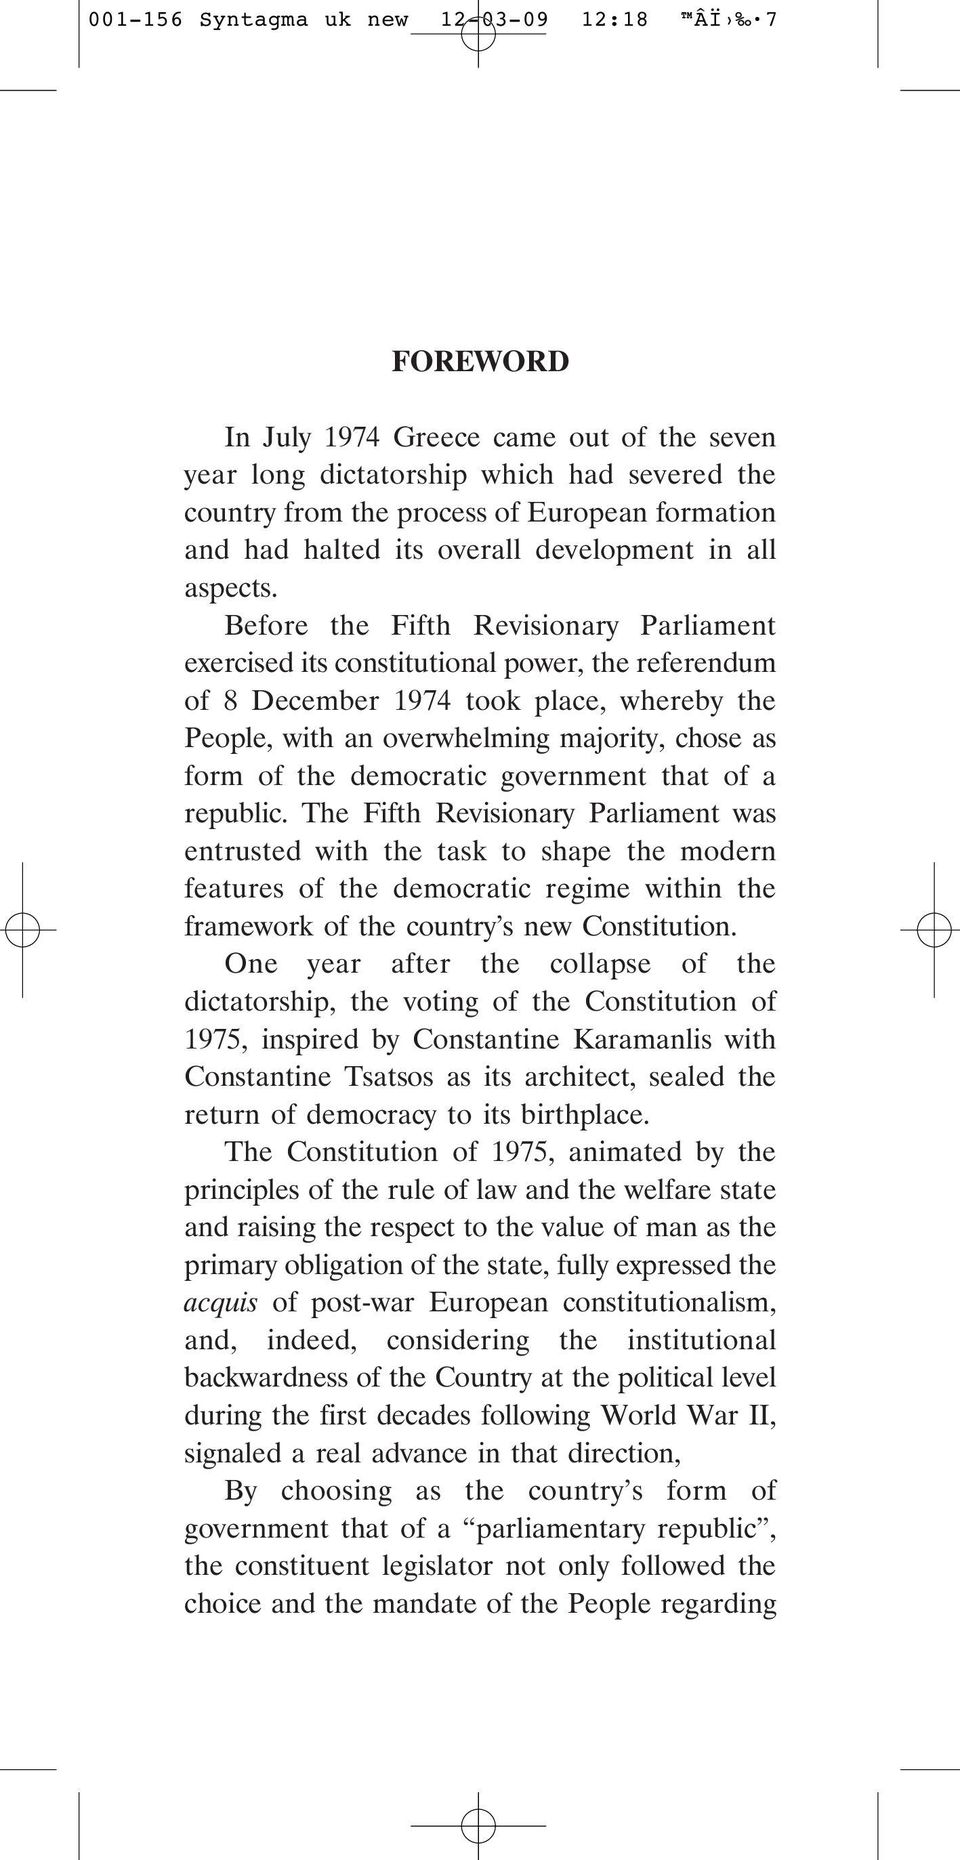 Before the Fifth Revisionary Parliament exercised its constitutional power, the referendum of 8 December 1974 took place, whereby the People, with an overwhelming majority, chose as form of the